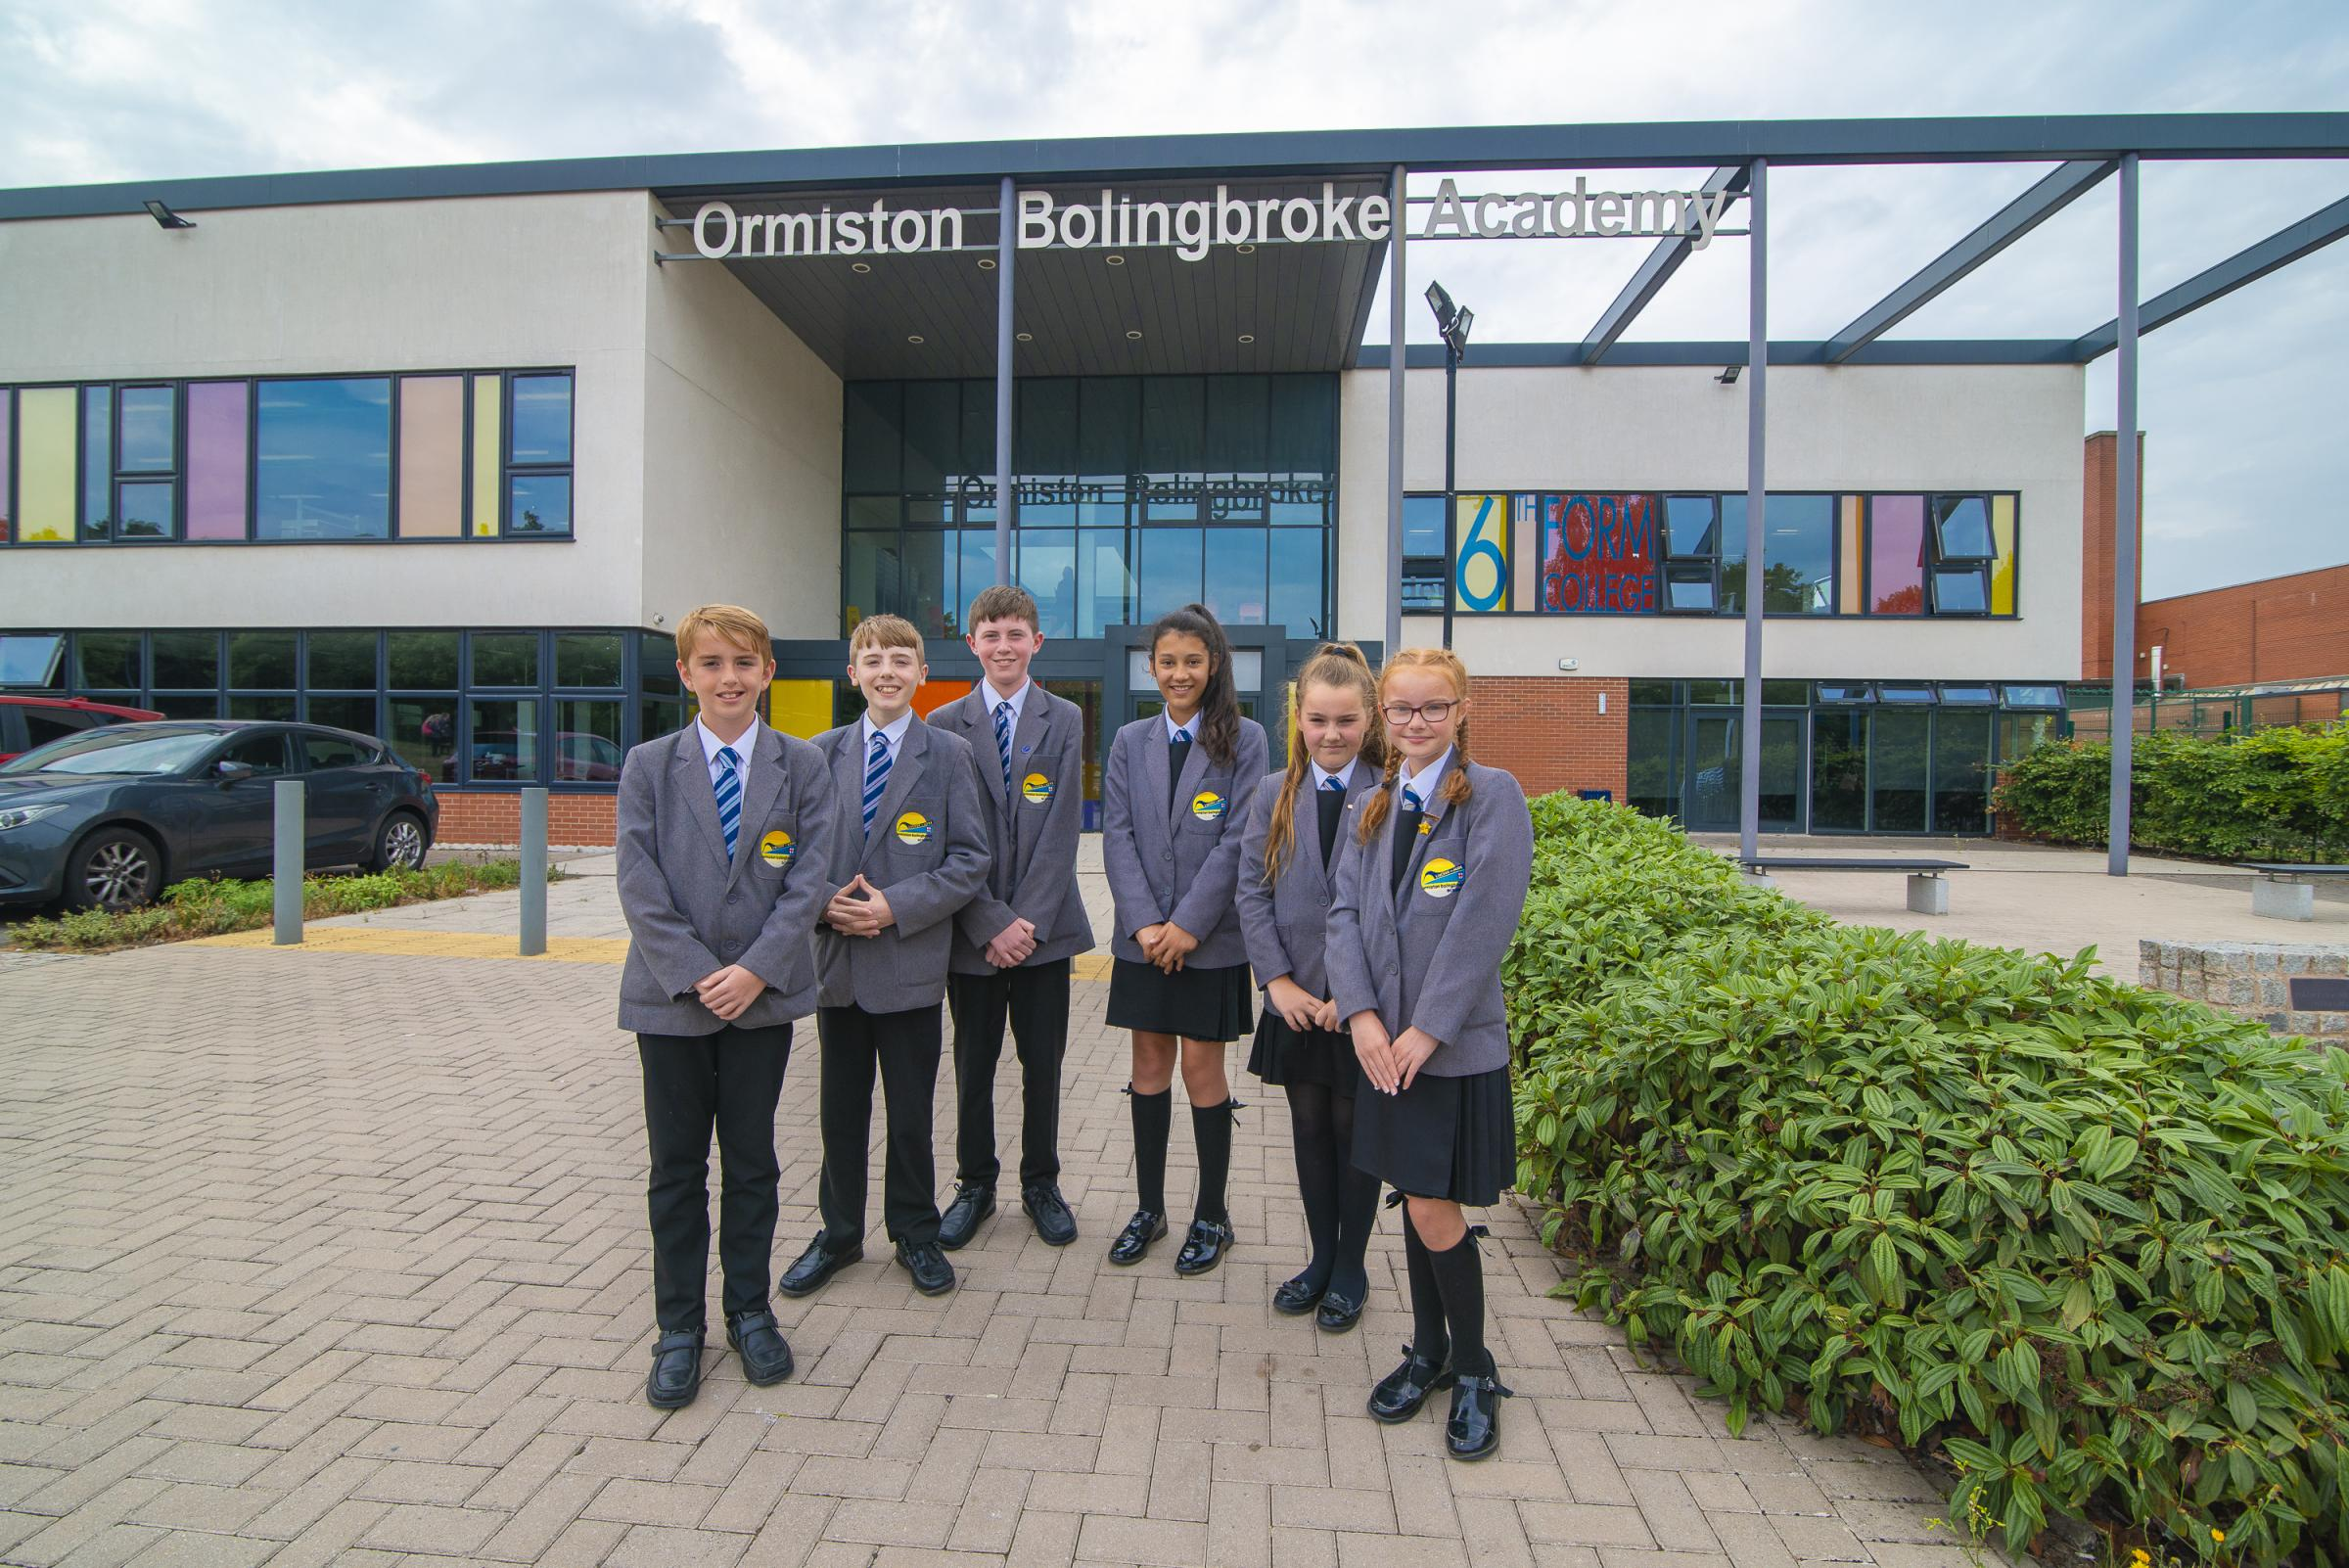 Ormiston Bolingbroke Academy in Runcorn is expanding to offer 200 more places